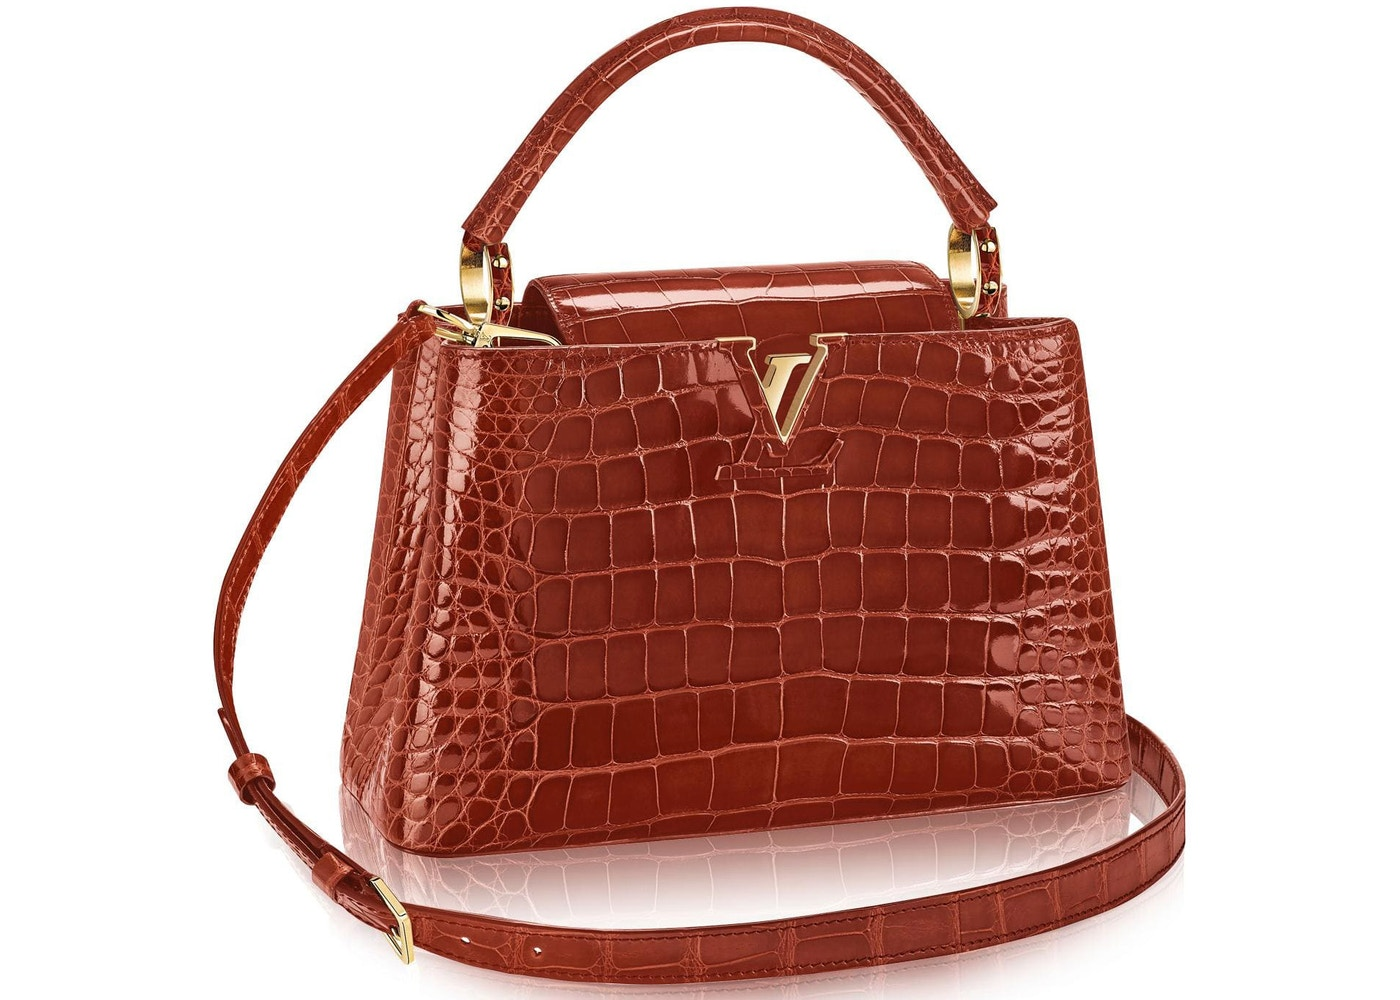 04601a6d6147 Buy   Sell Luxury Handbags